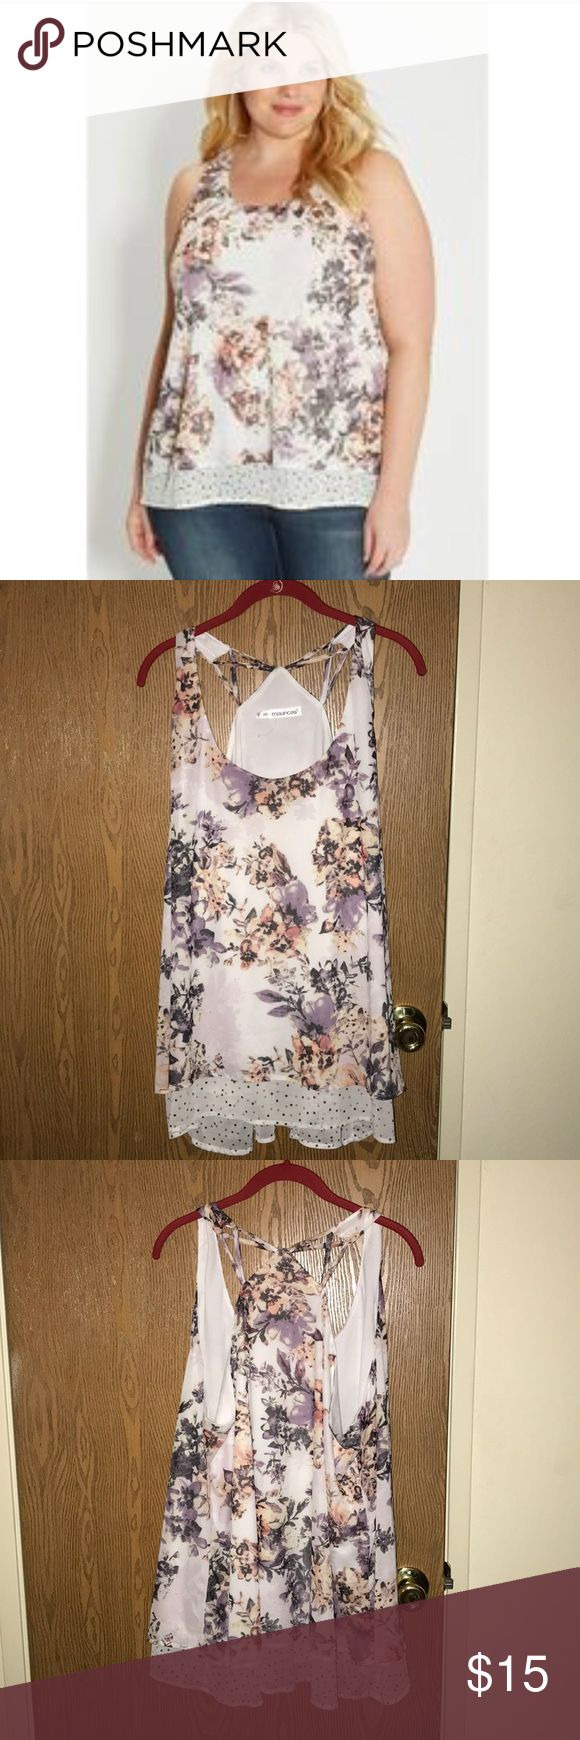 """Double Layered Floral Strappy Tank Top Maurices Plus Size 3: Flowy floral layer on top with a white shell and peek-a-boo polka dots underneath. Strappy Razorback style back.   In Excellent Condition  Measurements Laying Flat: Armpit to Armpit - 25"""" Shoulder to Bottom - 30"""" Bottom Hem - 28.5""""  Any other questions, please feel free to ask. Maurices Tops"""